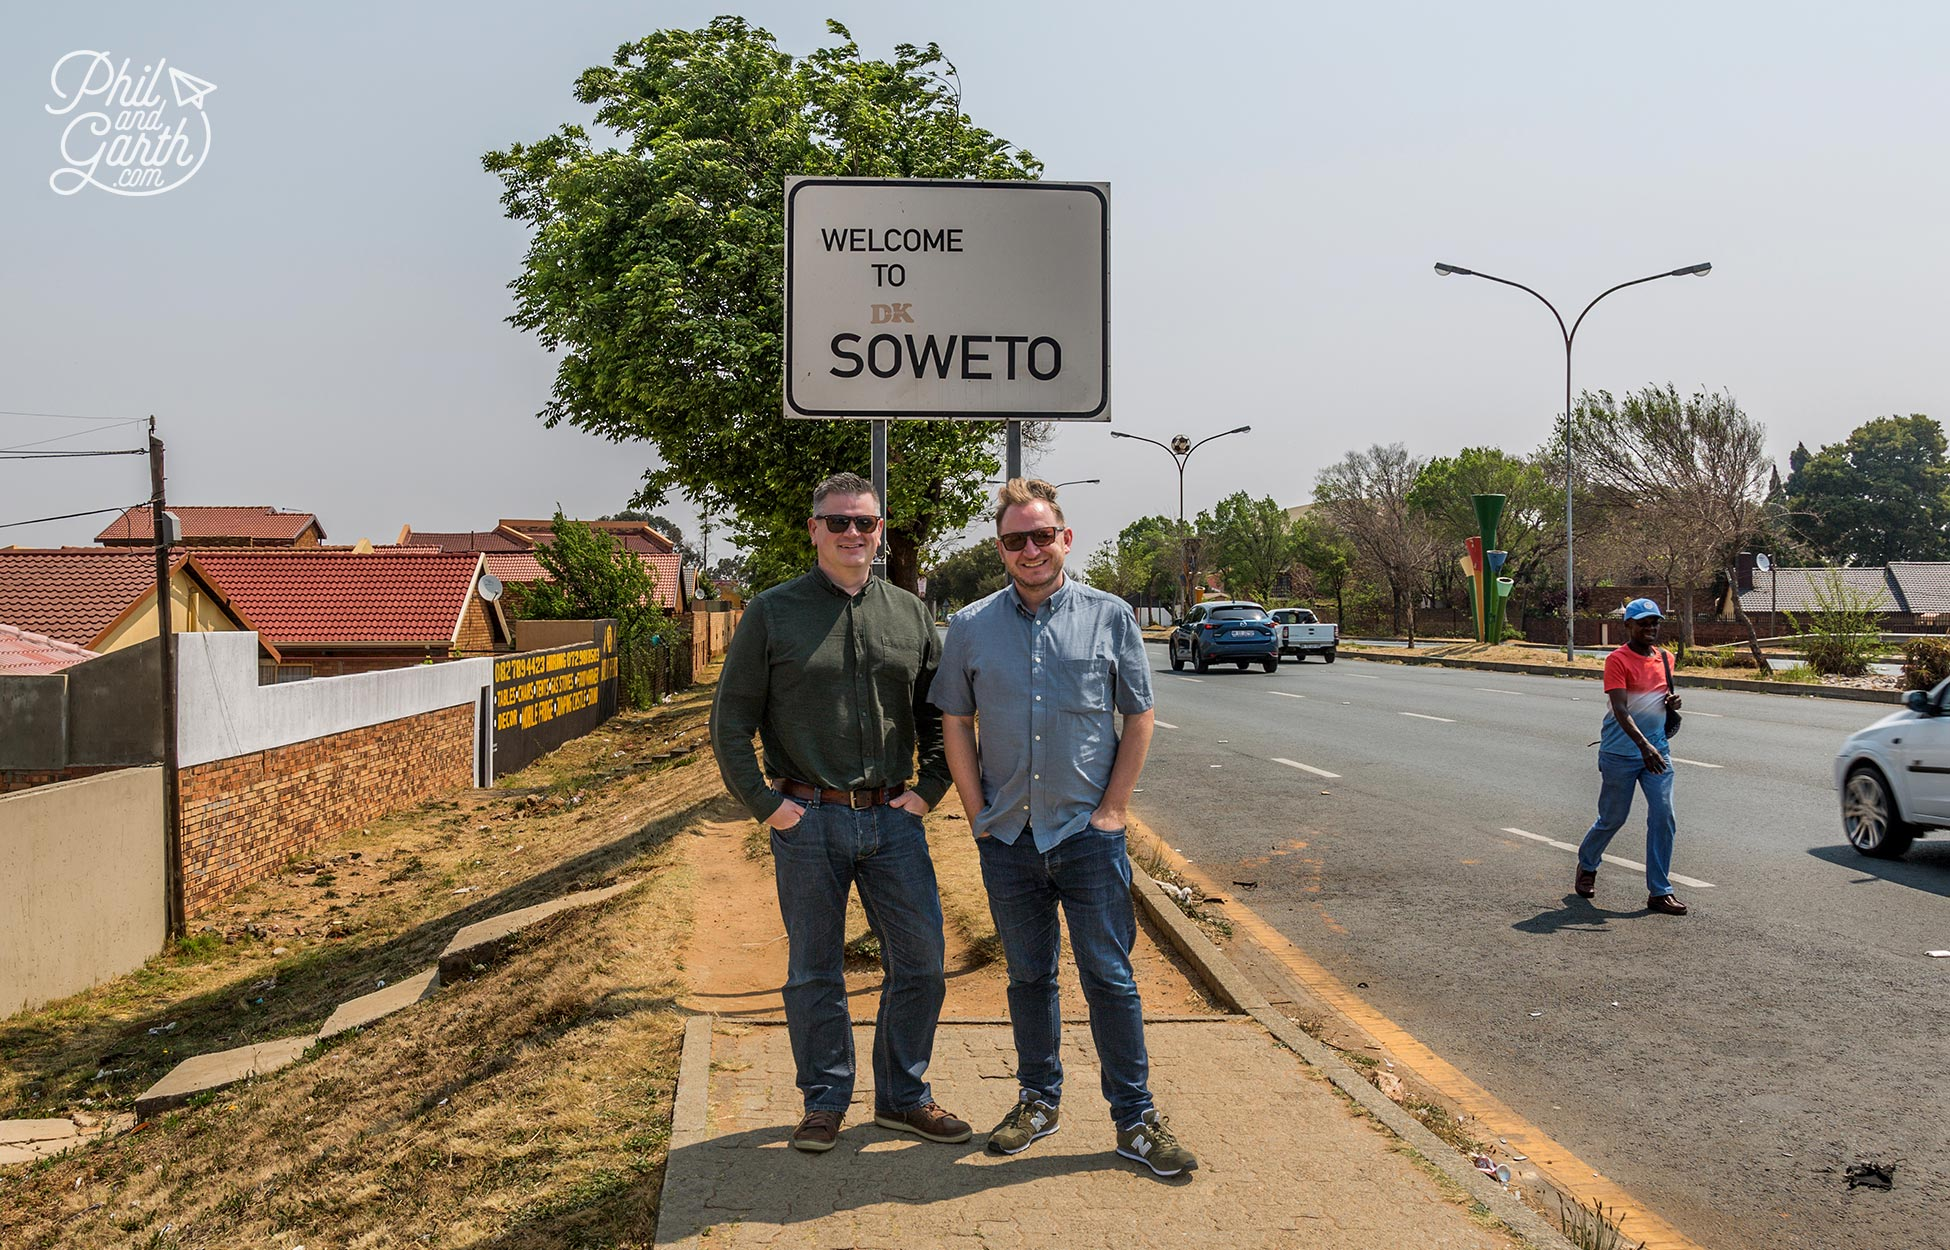 Phil and Garth in Soweto, Johannesburg